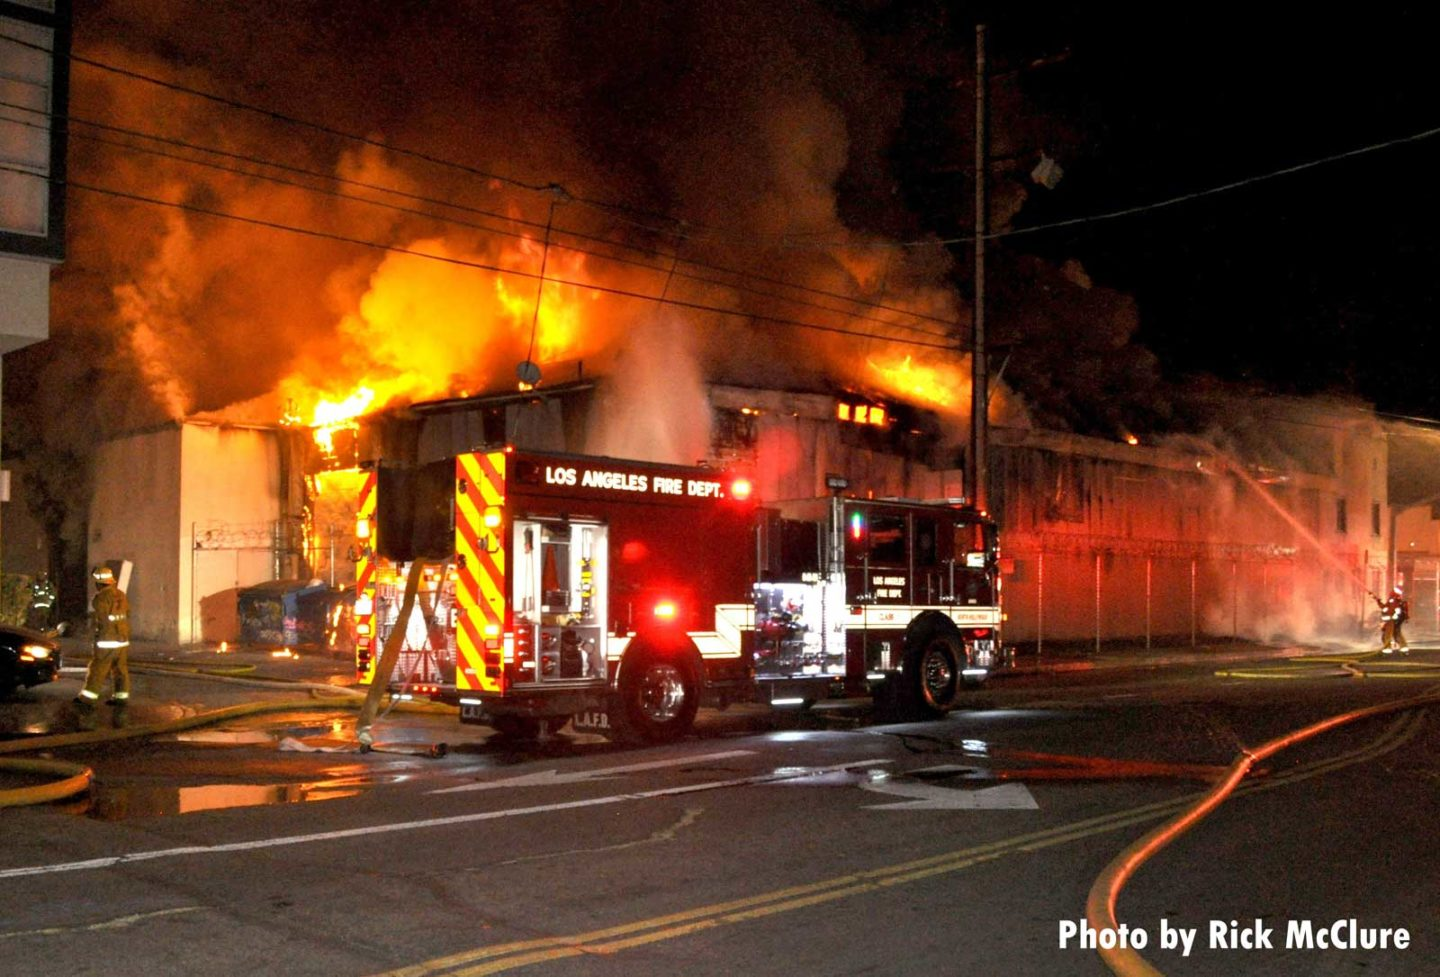 Major flames from a fire in a building with City of Los Angeles fire truck in front of structure